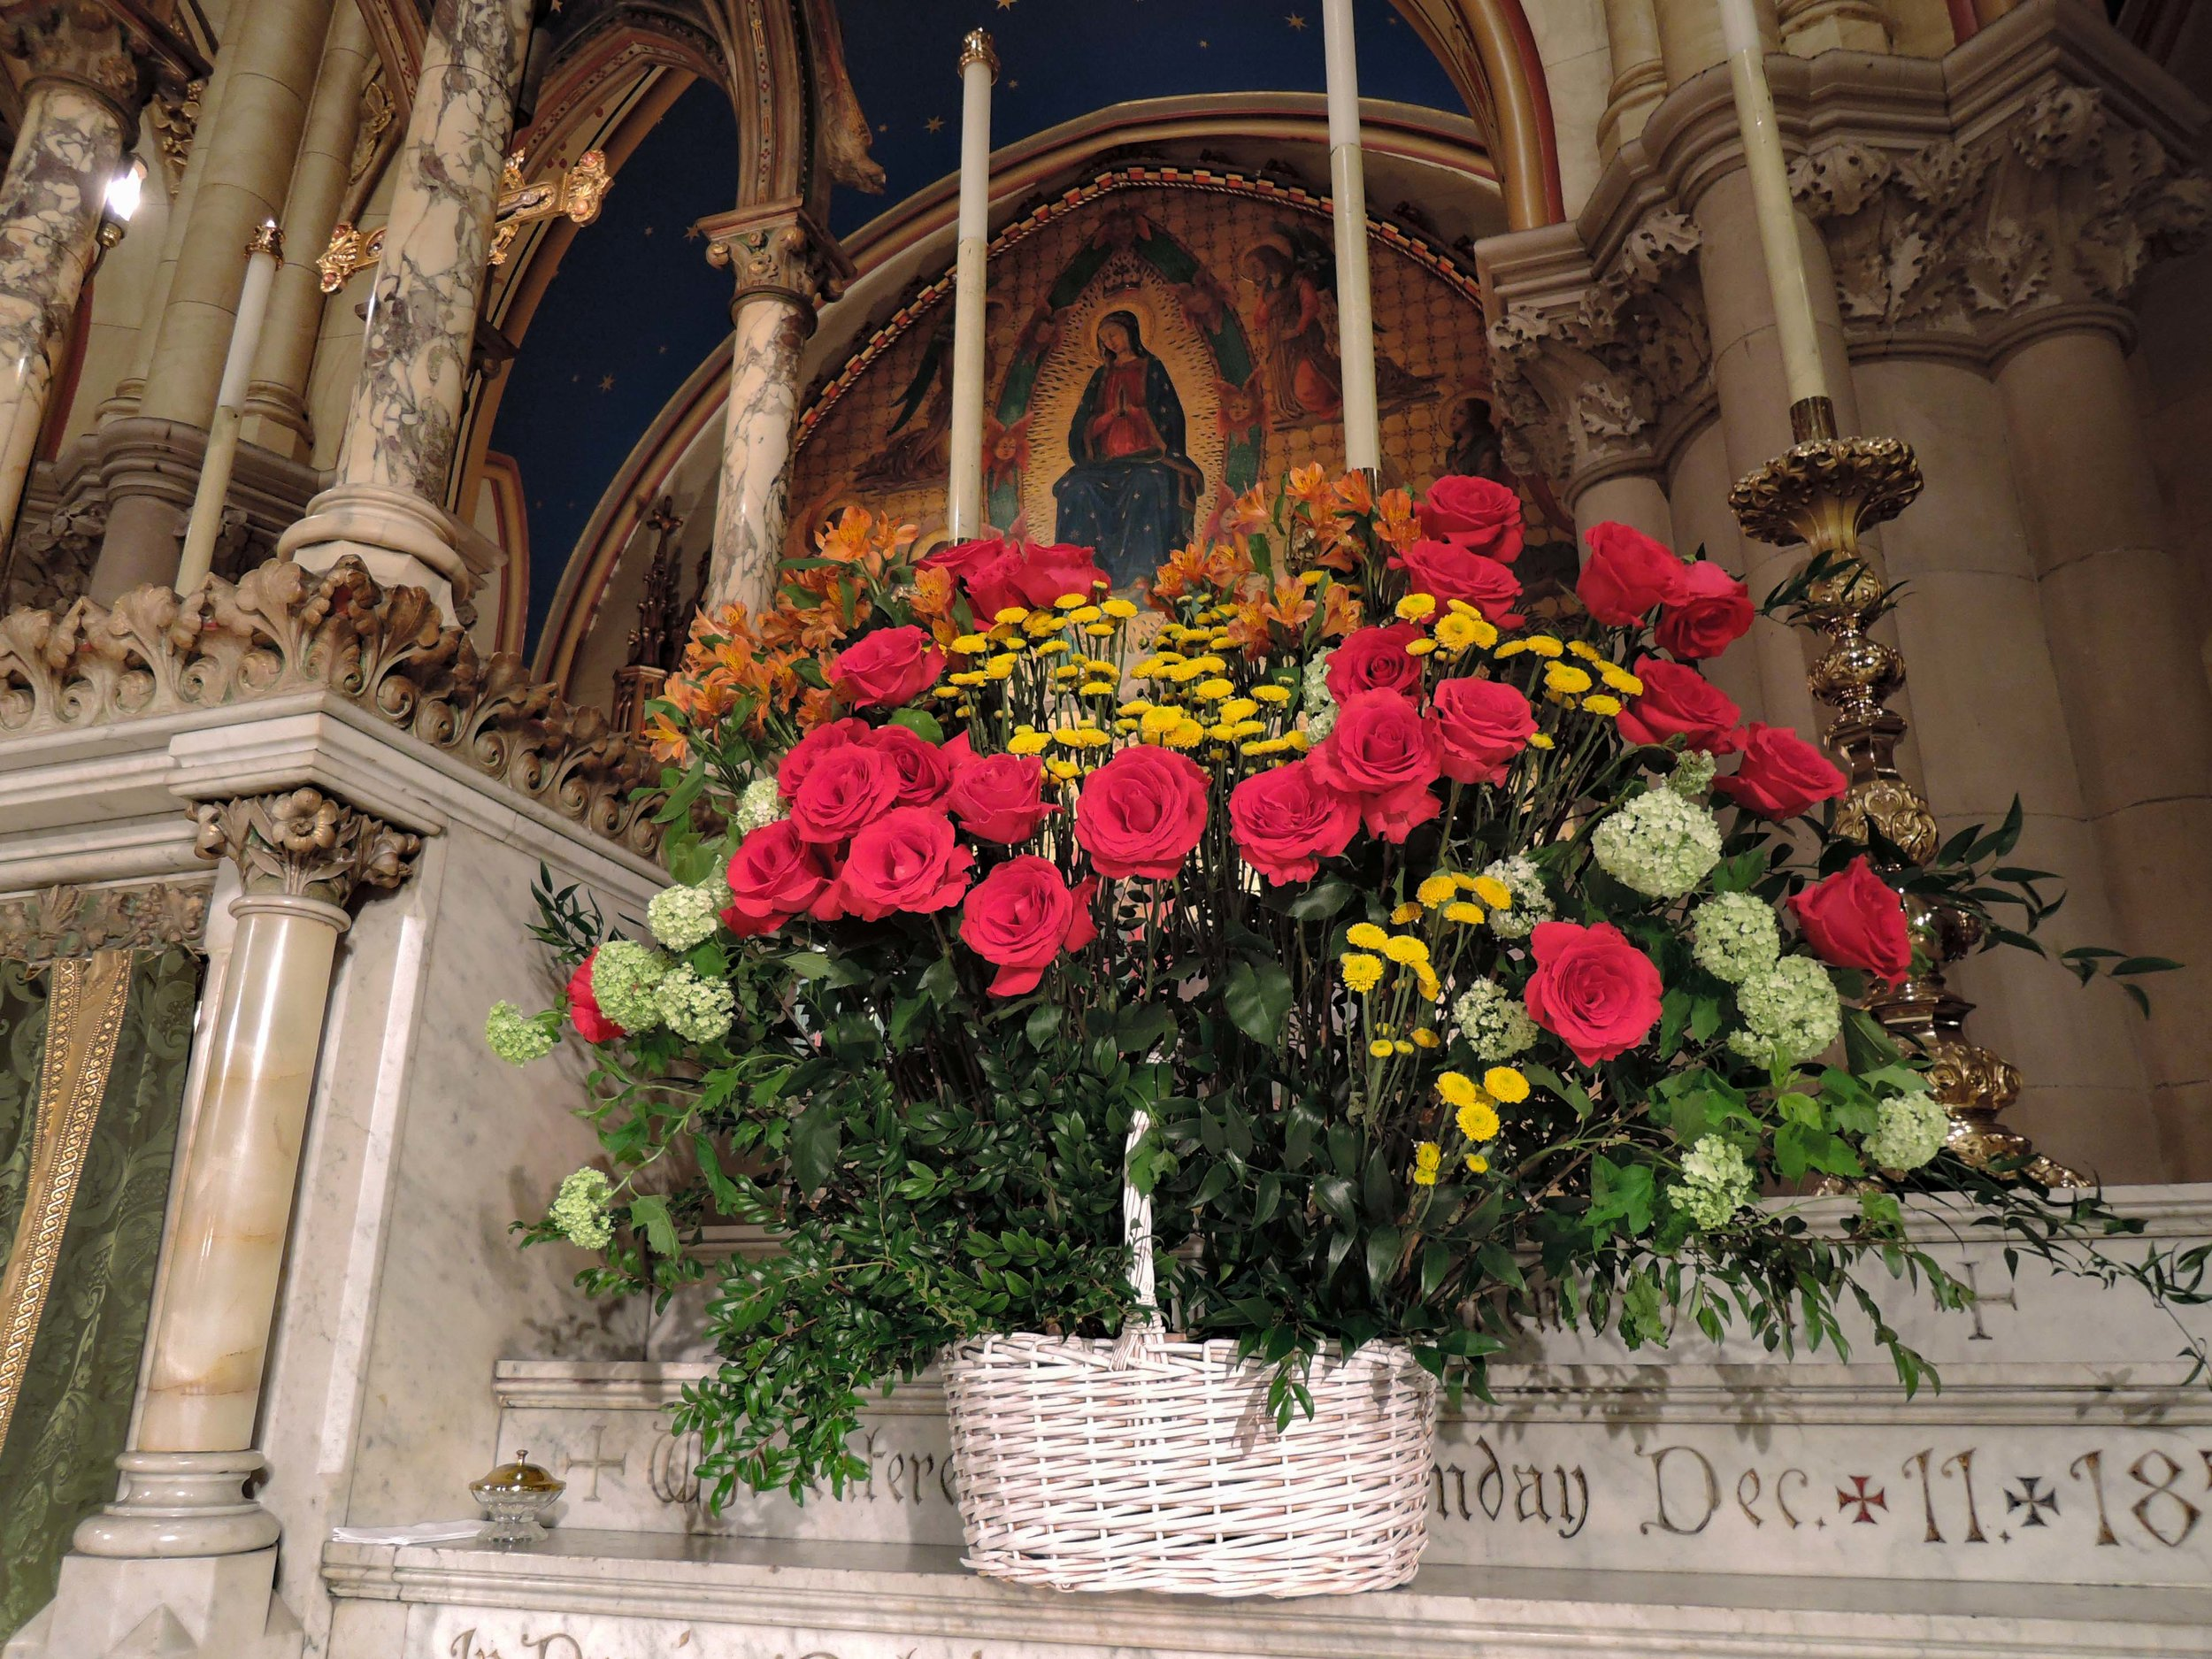 The High Altar, Sunday, July 8, 2018  Photo by Sr. Monica Clare, C.S.J.B.